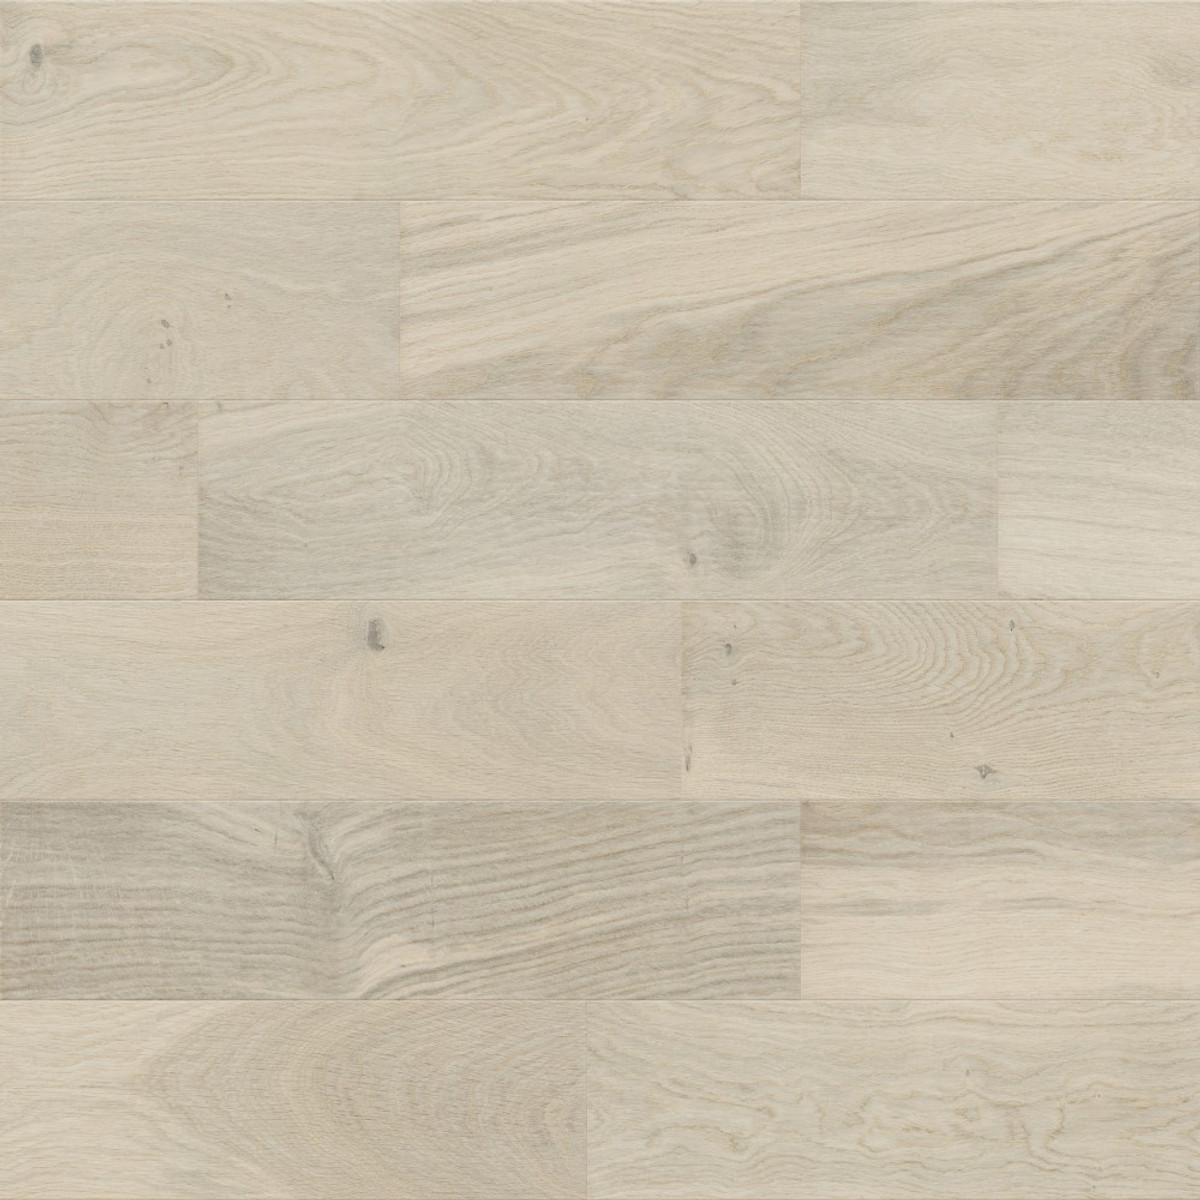 Tuscany Cream Matt Lacquered Engineered Wood Flooring